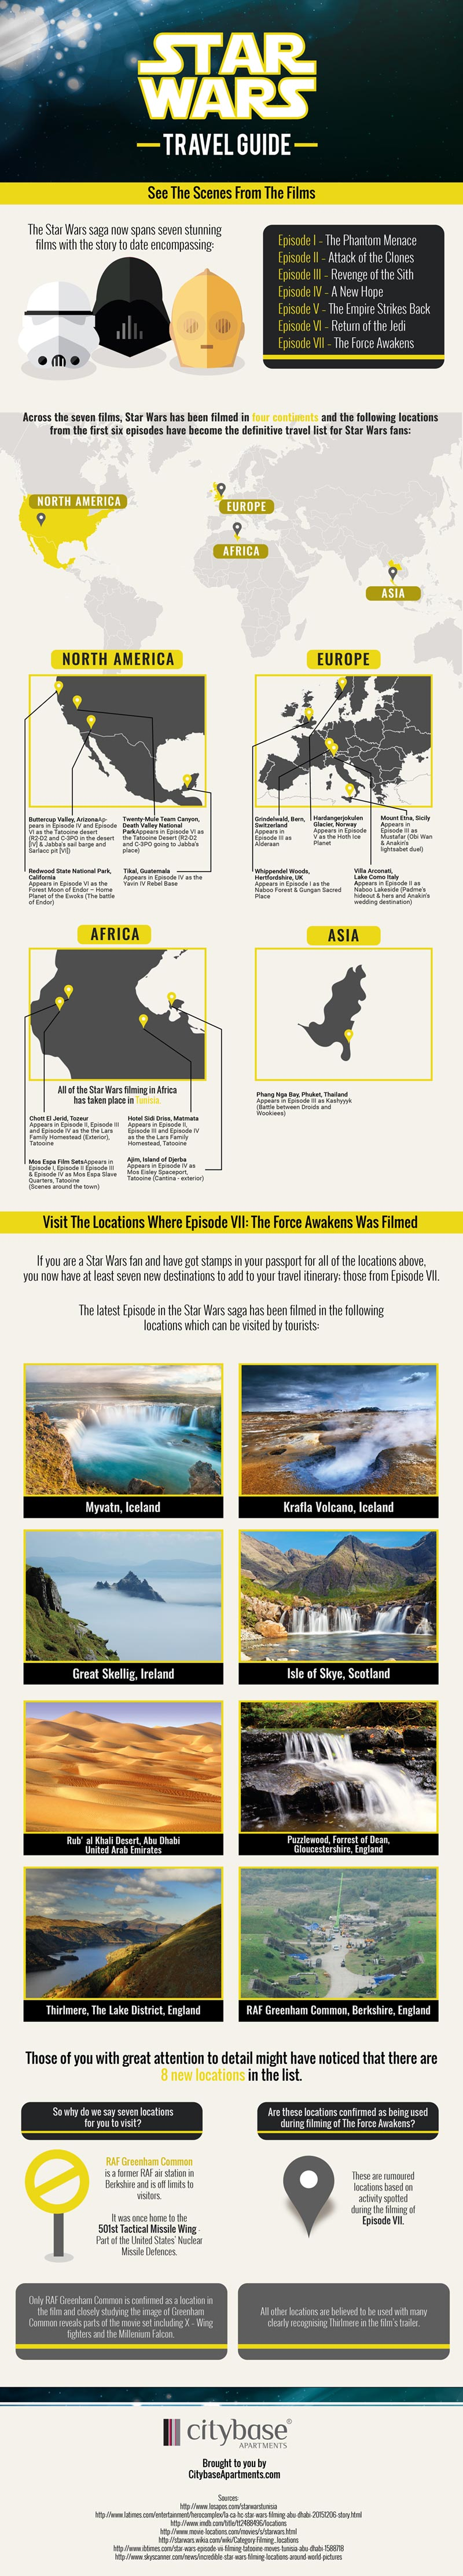 Star-wars-travel-guide-02